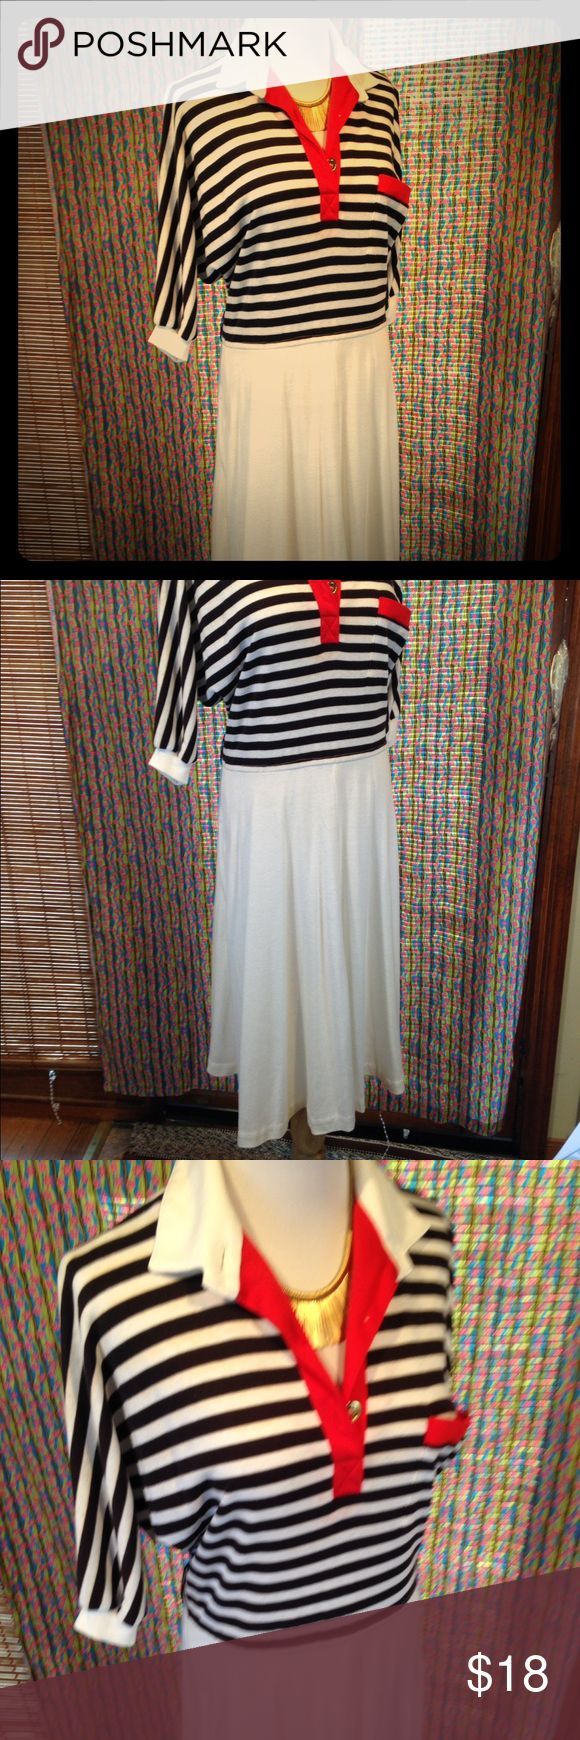 Vintage 1X or 2X Sailor stripes dress I bought this from a vintage store and absolutely loved it before I lost weight. It does have some light tan staining from age. Please see photos. The stripes with the popping red accent is sure to stand out. I usually paired with a cardigan, so the light staining was never visible. Dresses Midi